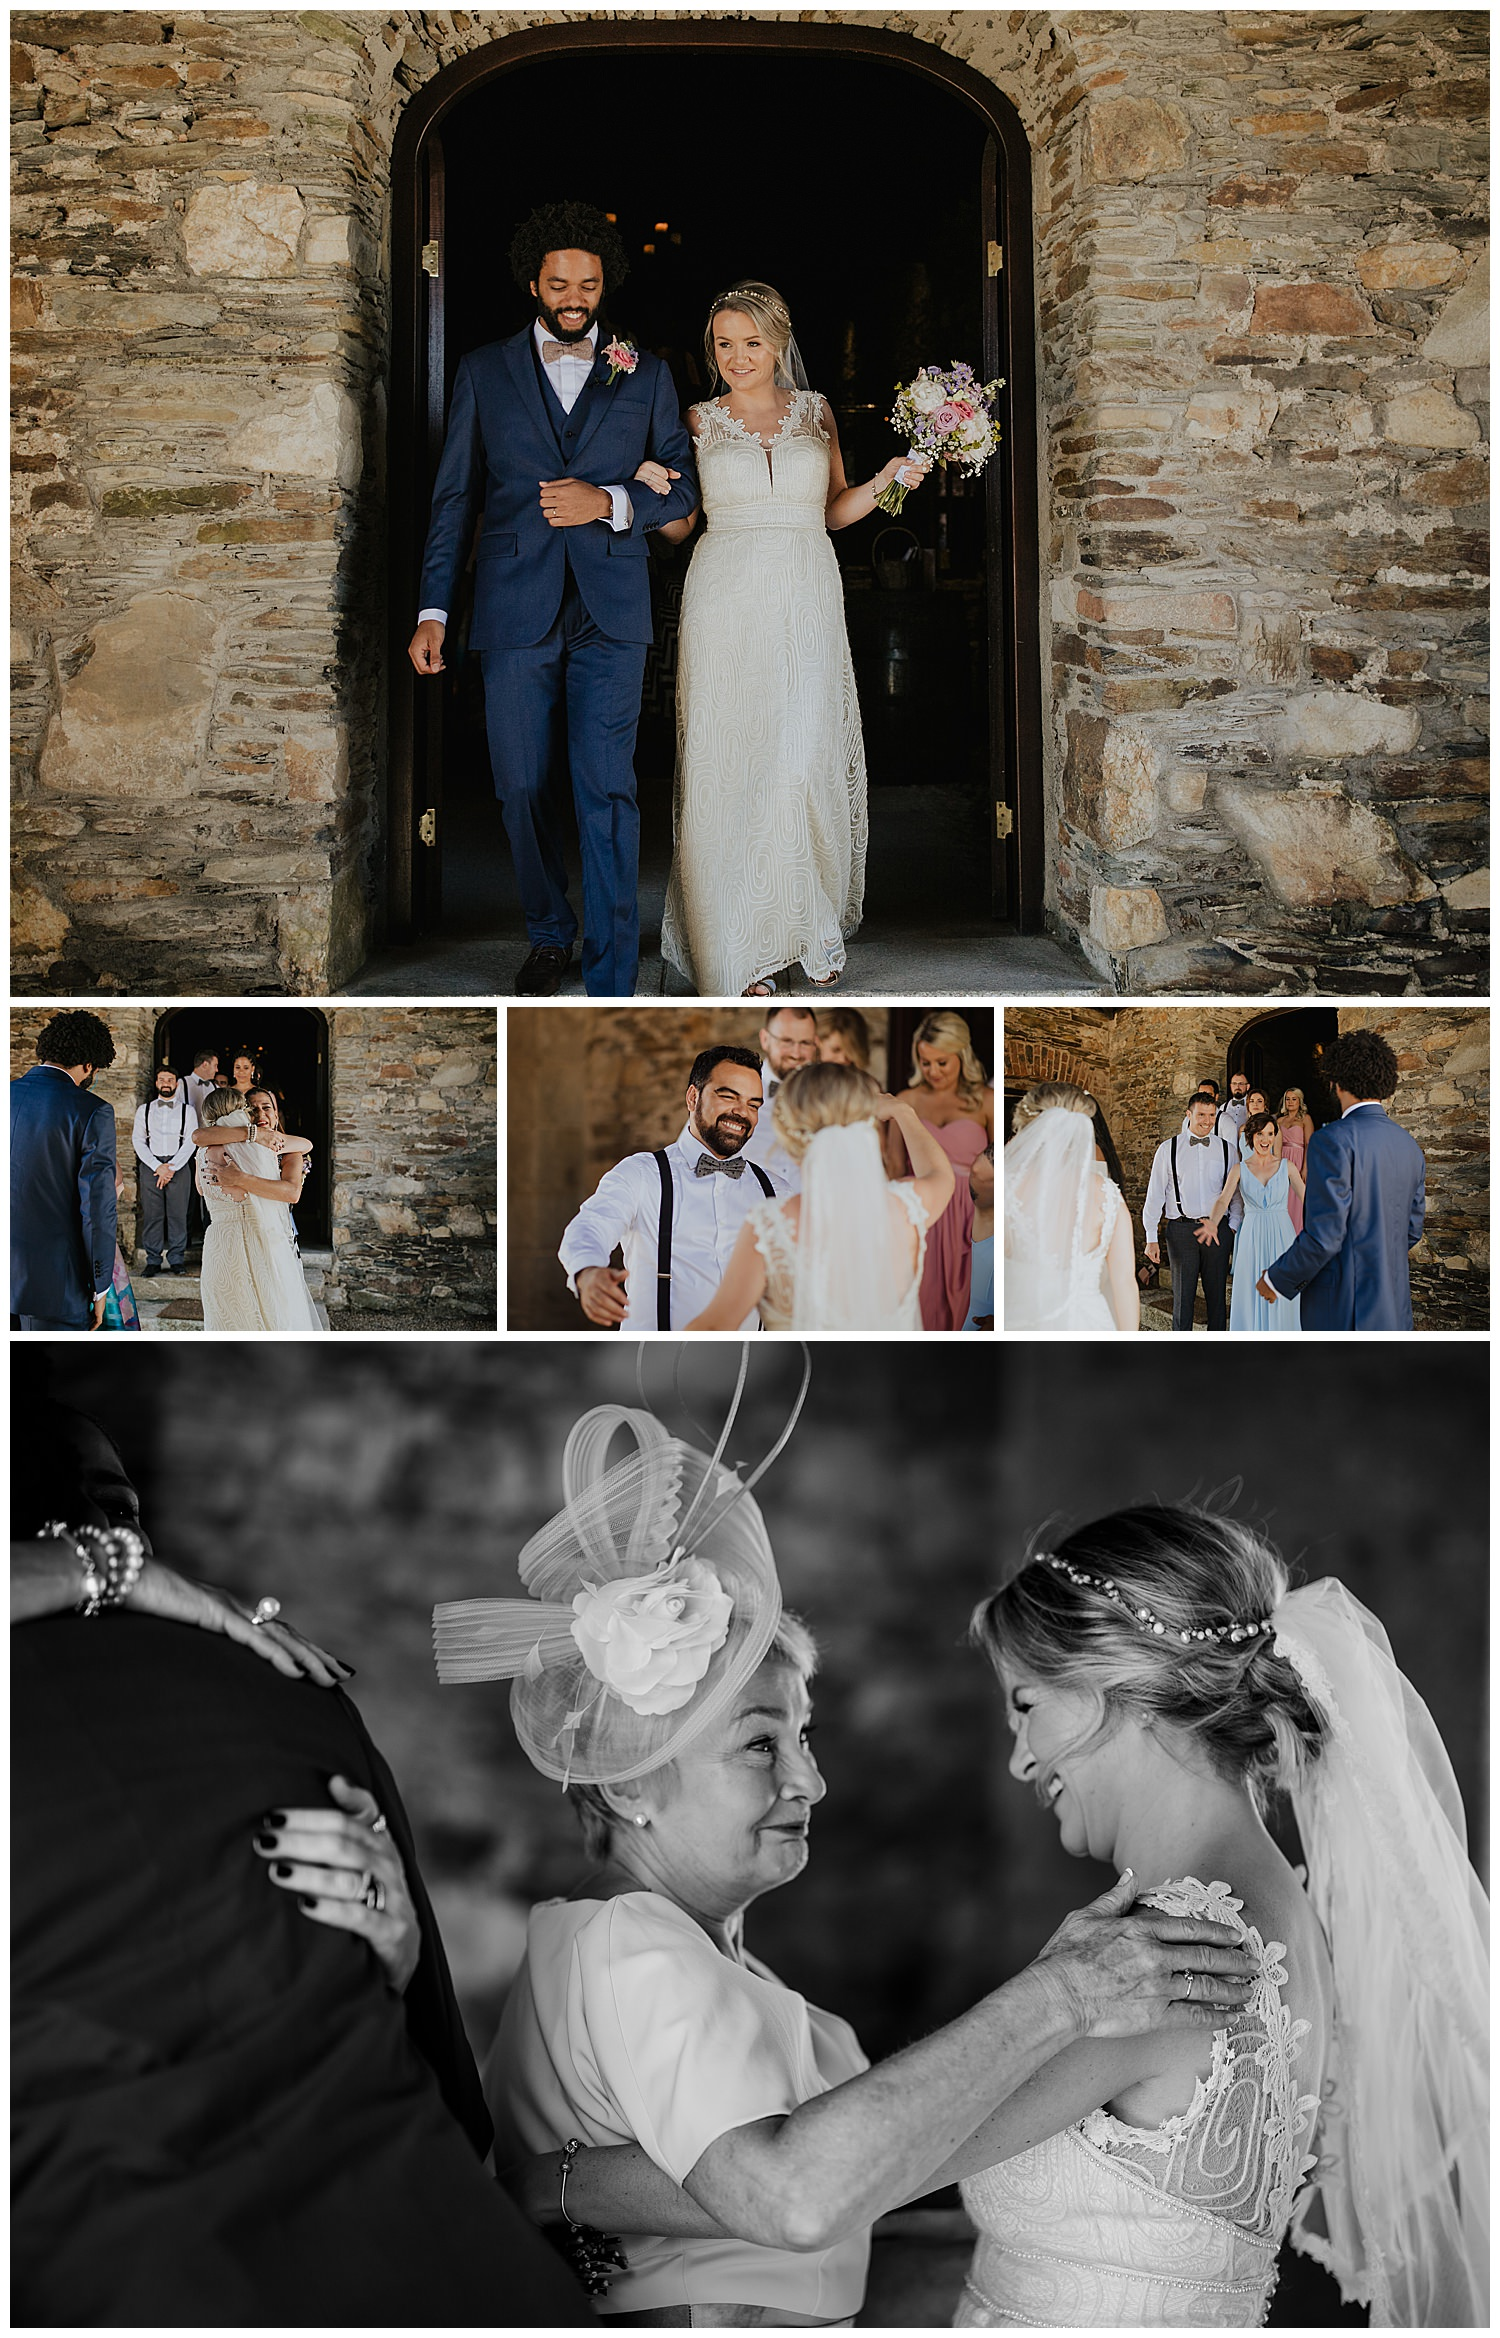 j&r_ballybeg_house_wedding_photographer_livia_figueiredo_299.jpg